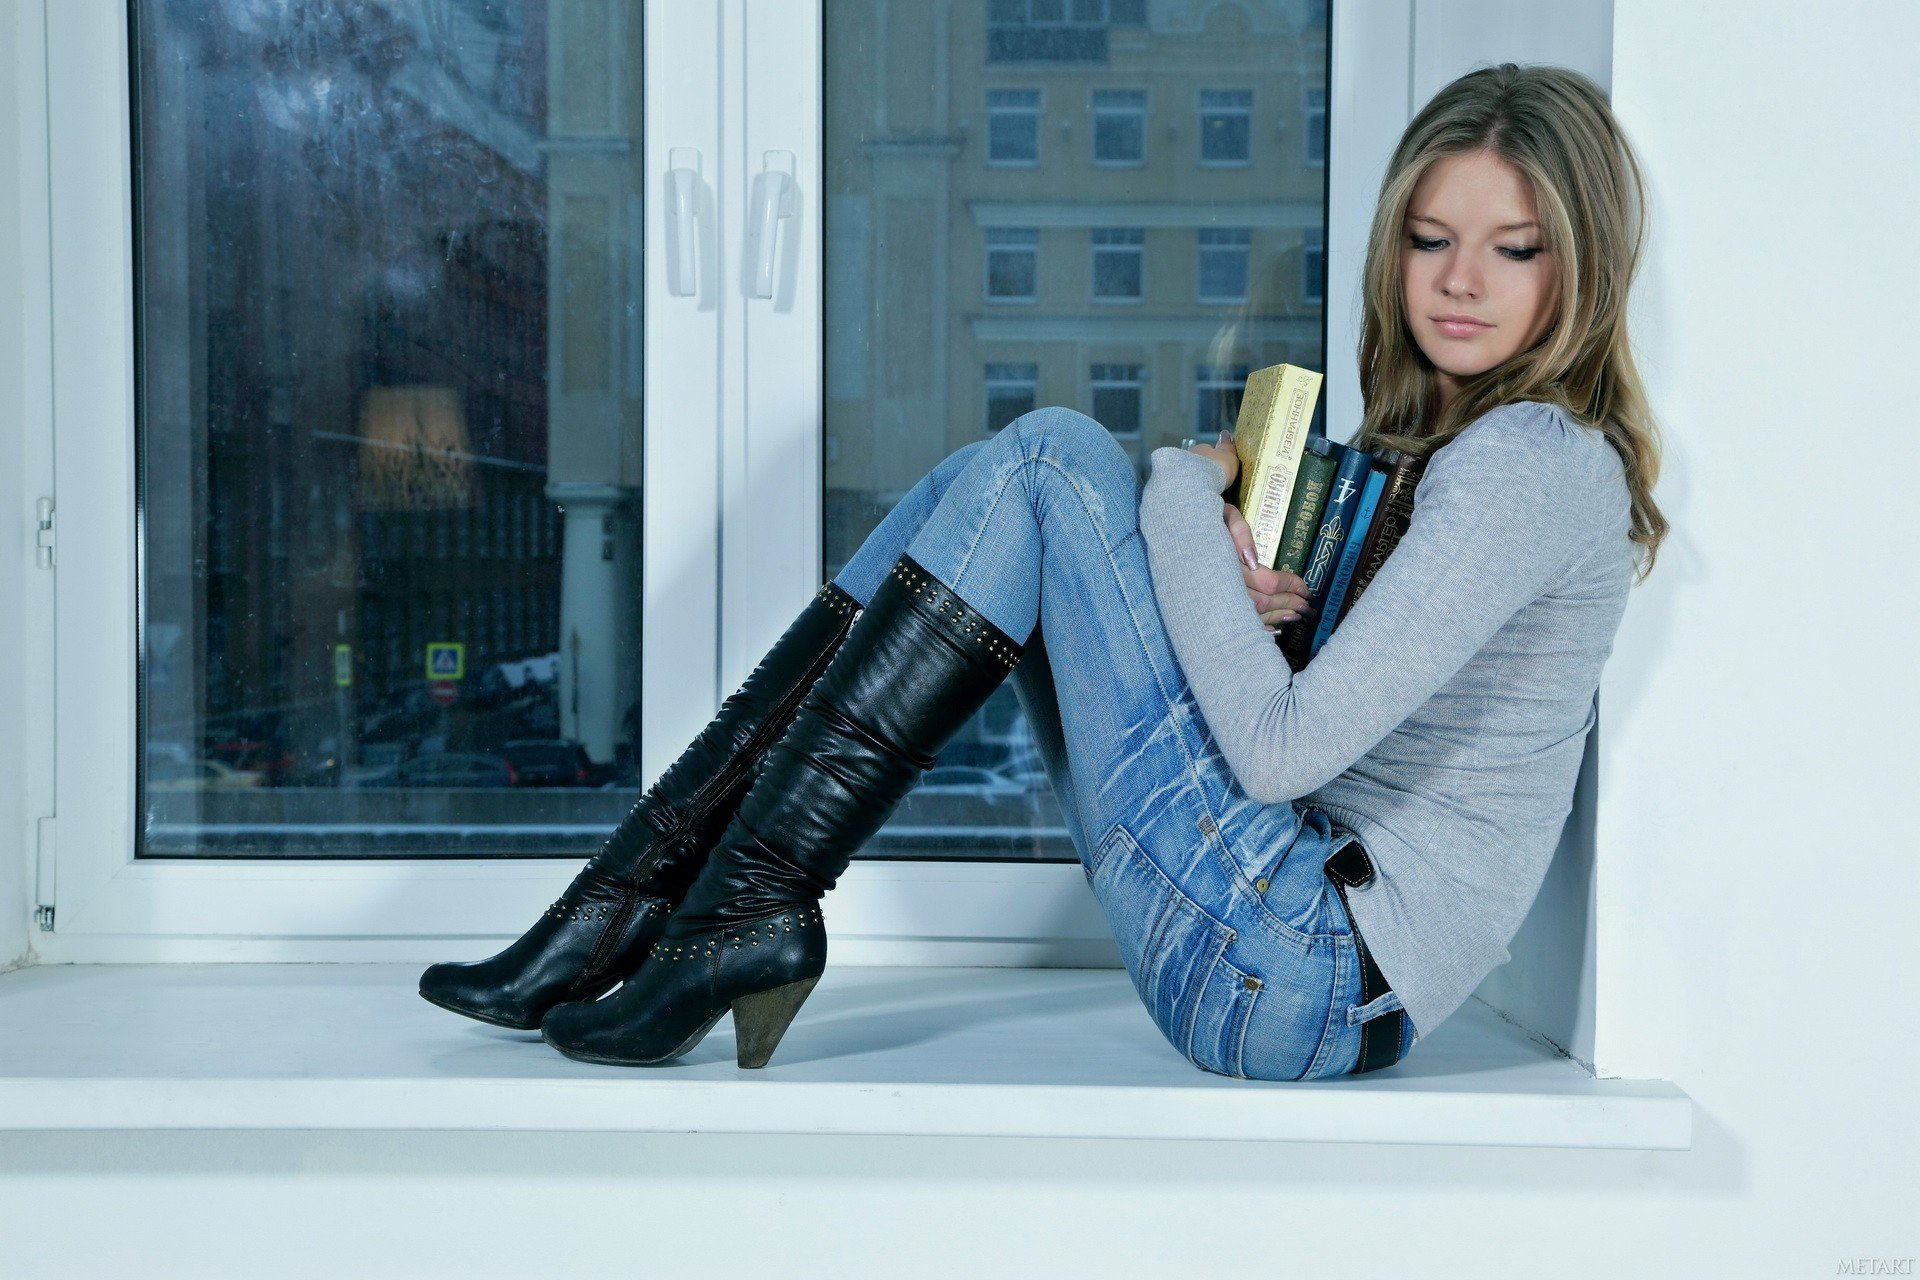 Catherine A, Women, Blonde, Blue Eyes, Books, Leather Boots Hd Wallpapers  Desktop -6884